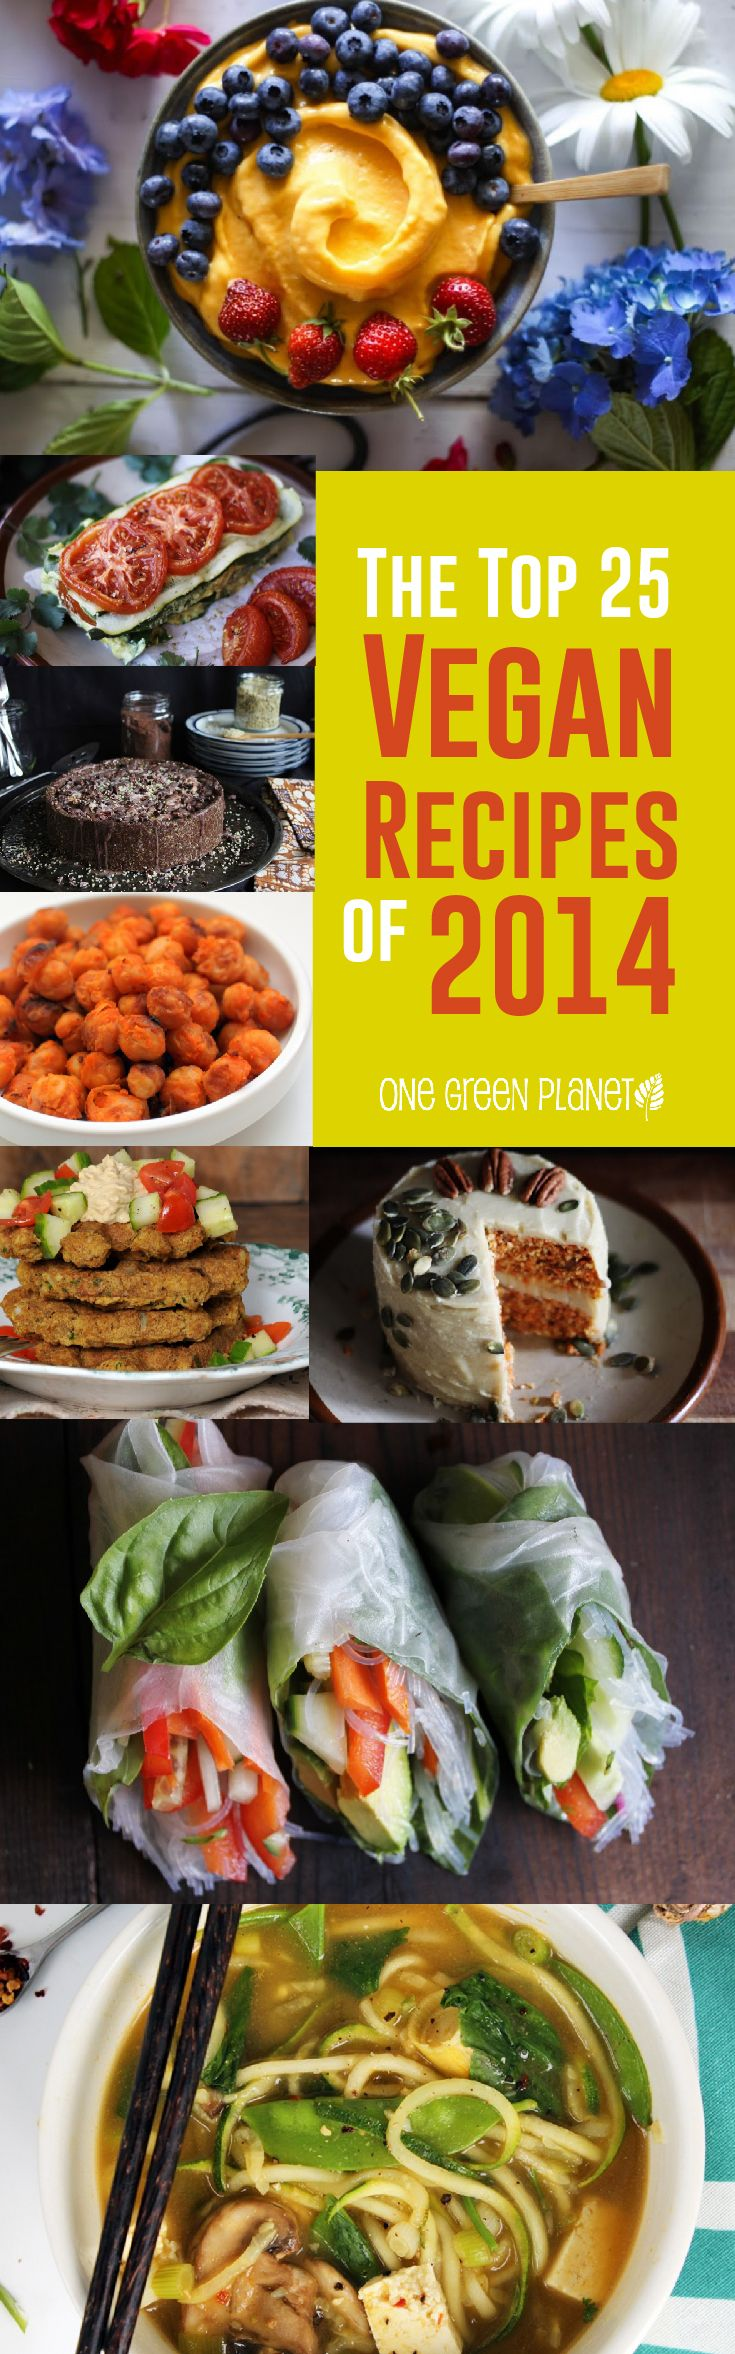 Top 25 Vegan Reicpes. Can't wait to try the lemongrass zucchini noodles. http://onegr.pl/1HZvkC5 #vegan #vegetarian #recipes